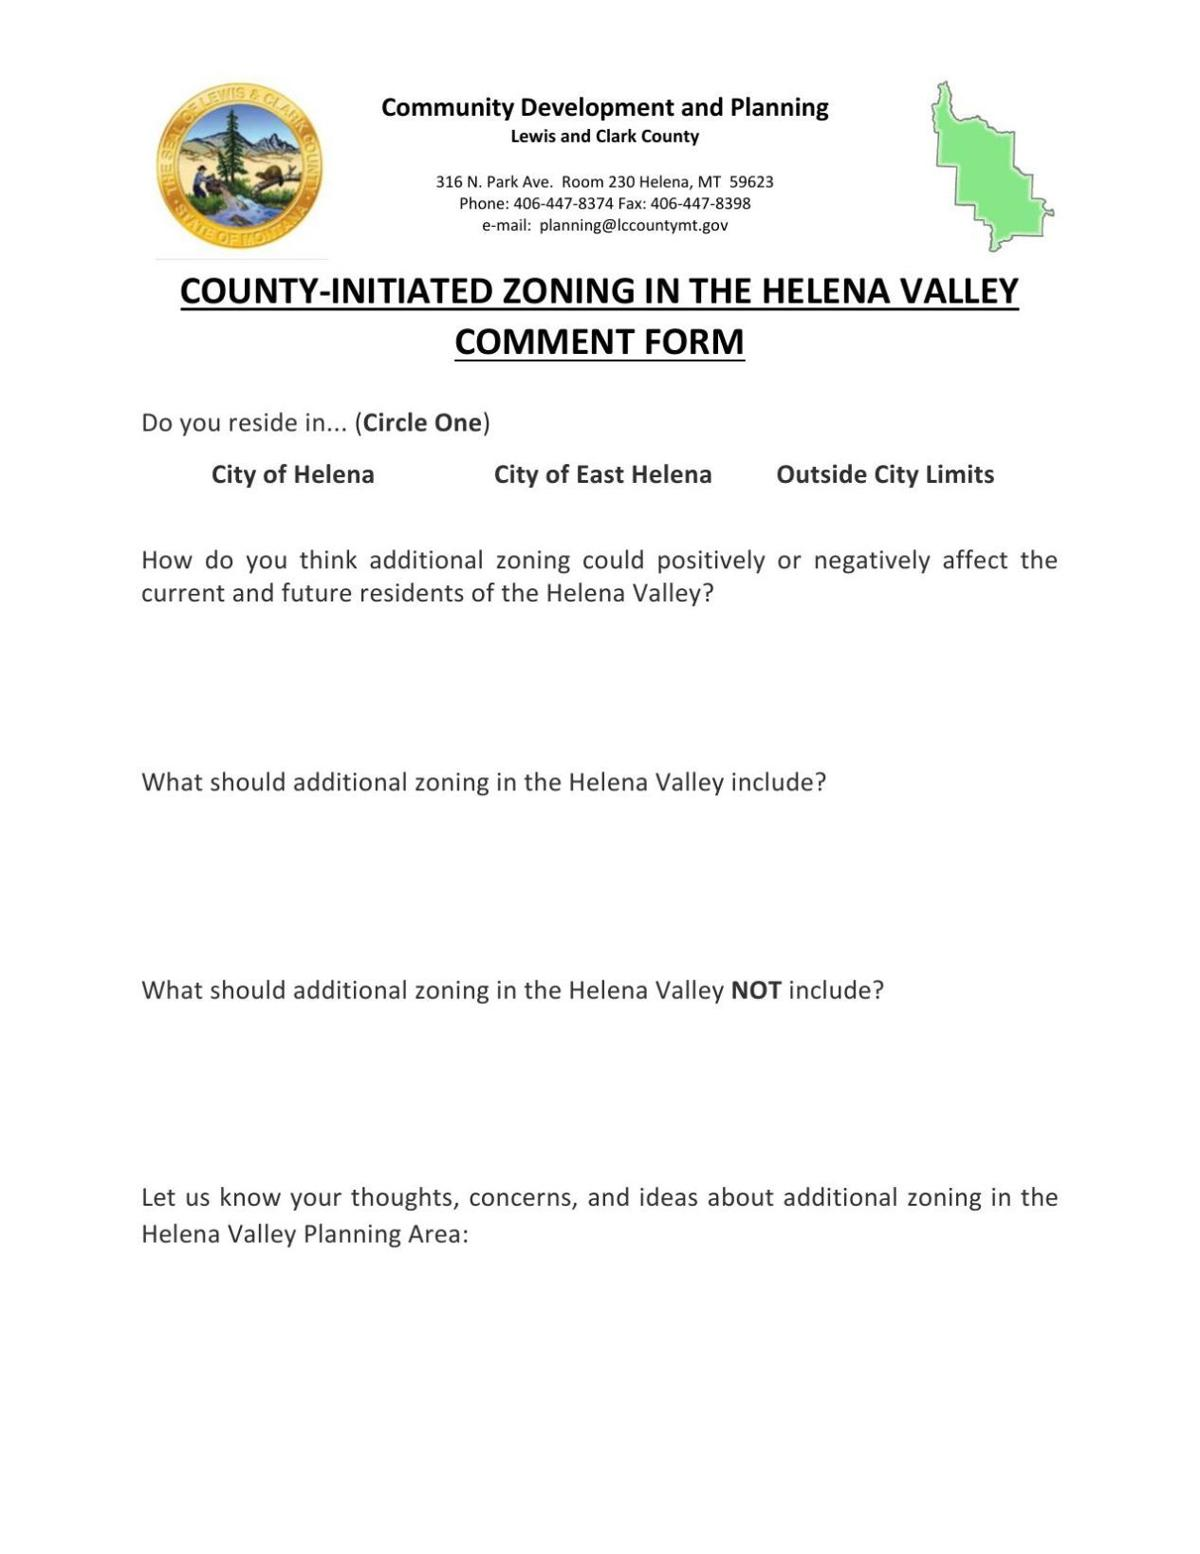 Zoning comment form